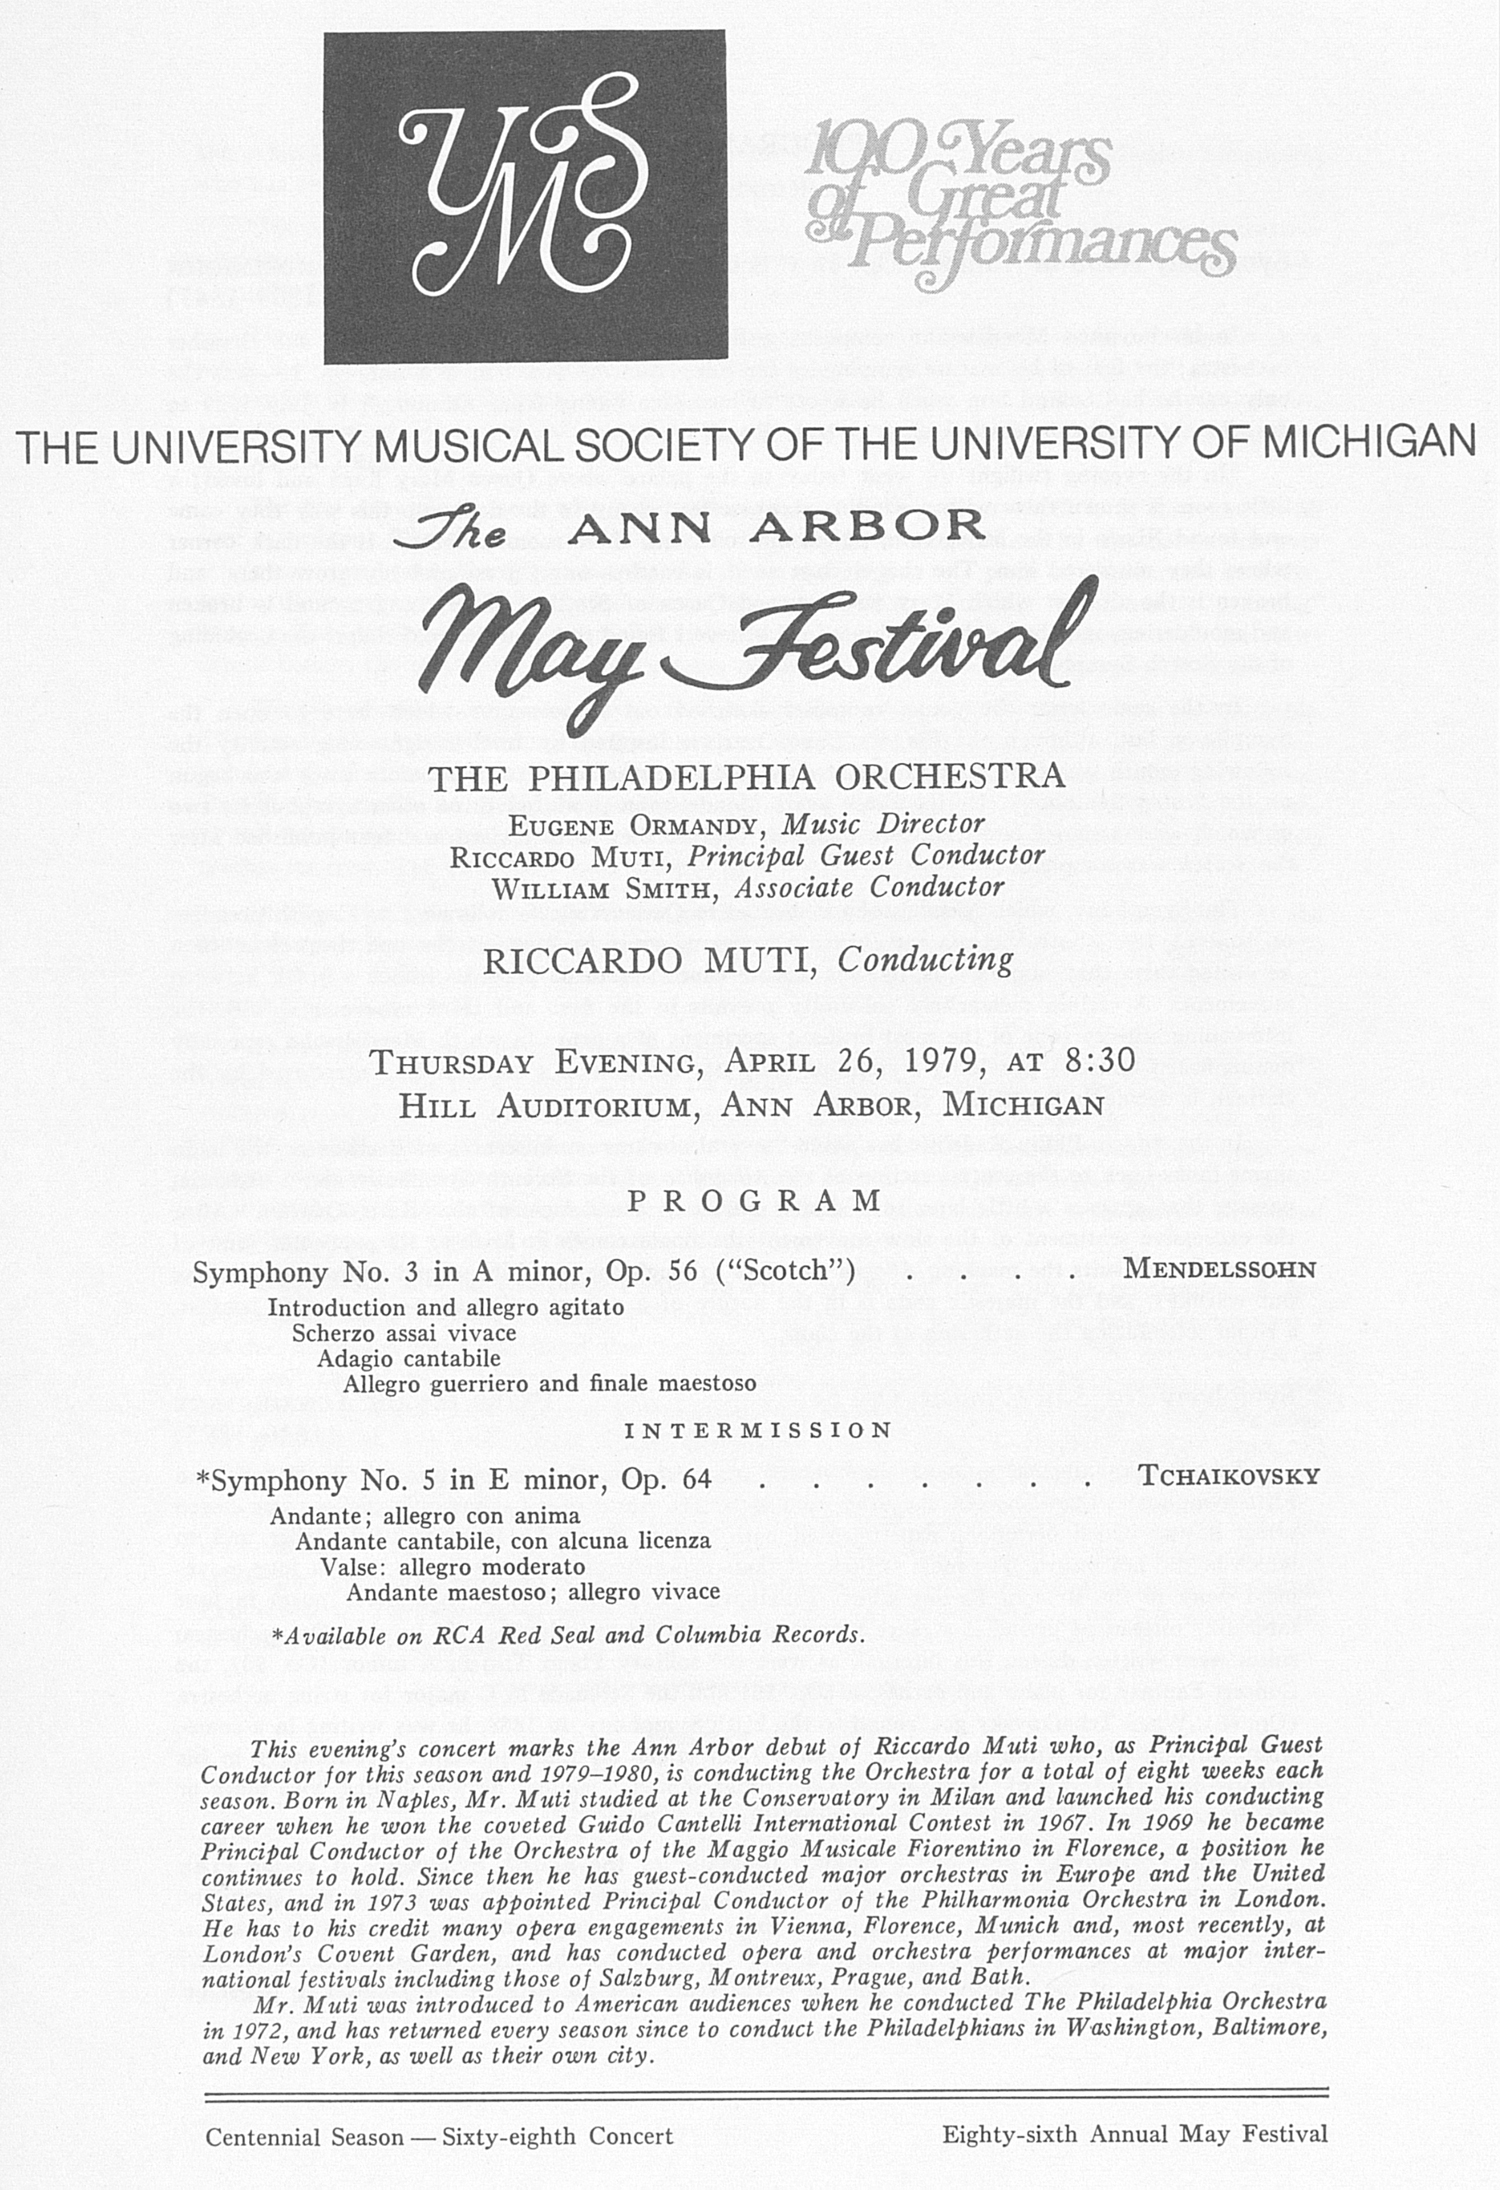 UMS Concert Program, April 26, 1979: The Ann Arbor May Festival -- The Philadelphia Orchestra image